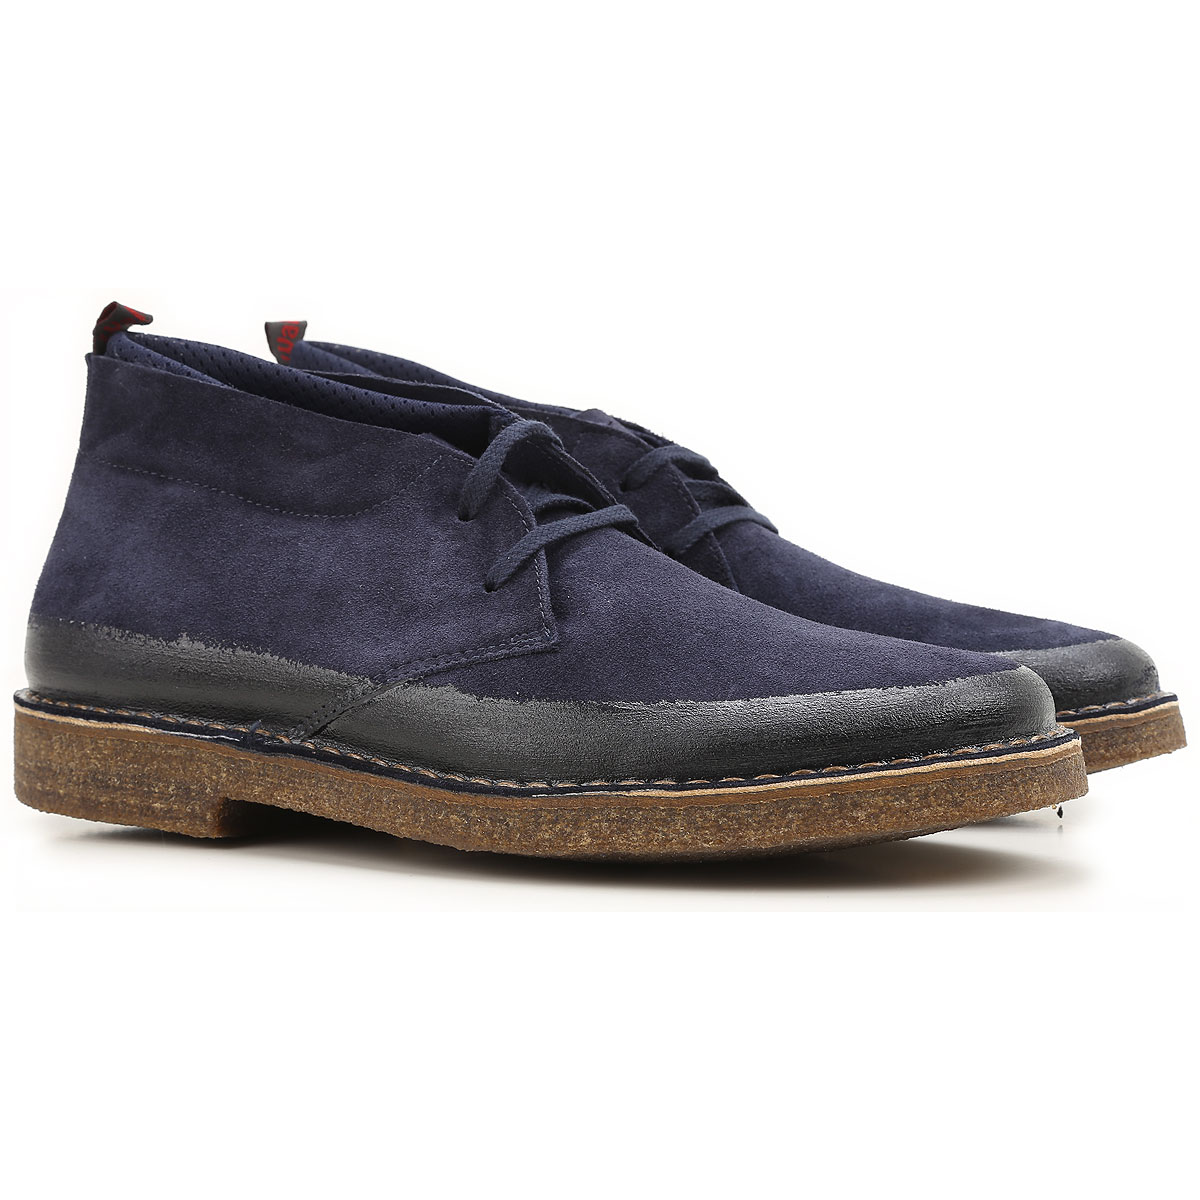 Image of Wally Walker Boots for Men, Booties, Dark Blue, Suede leather, 2017, 10 7.5 8 9